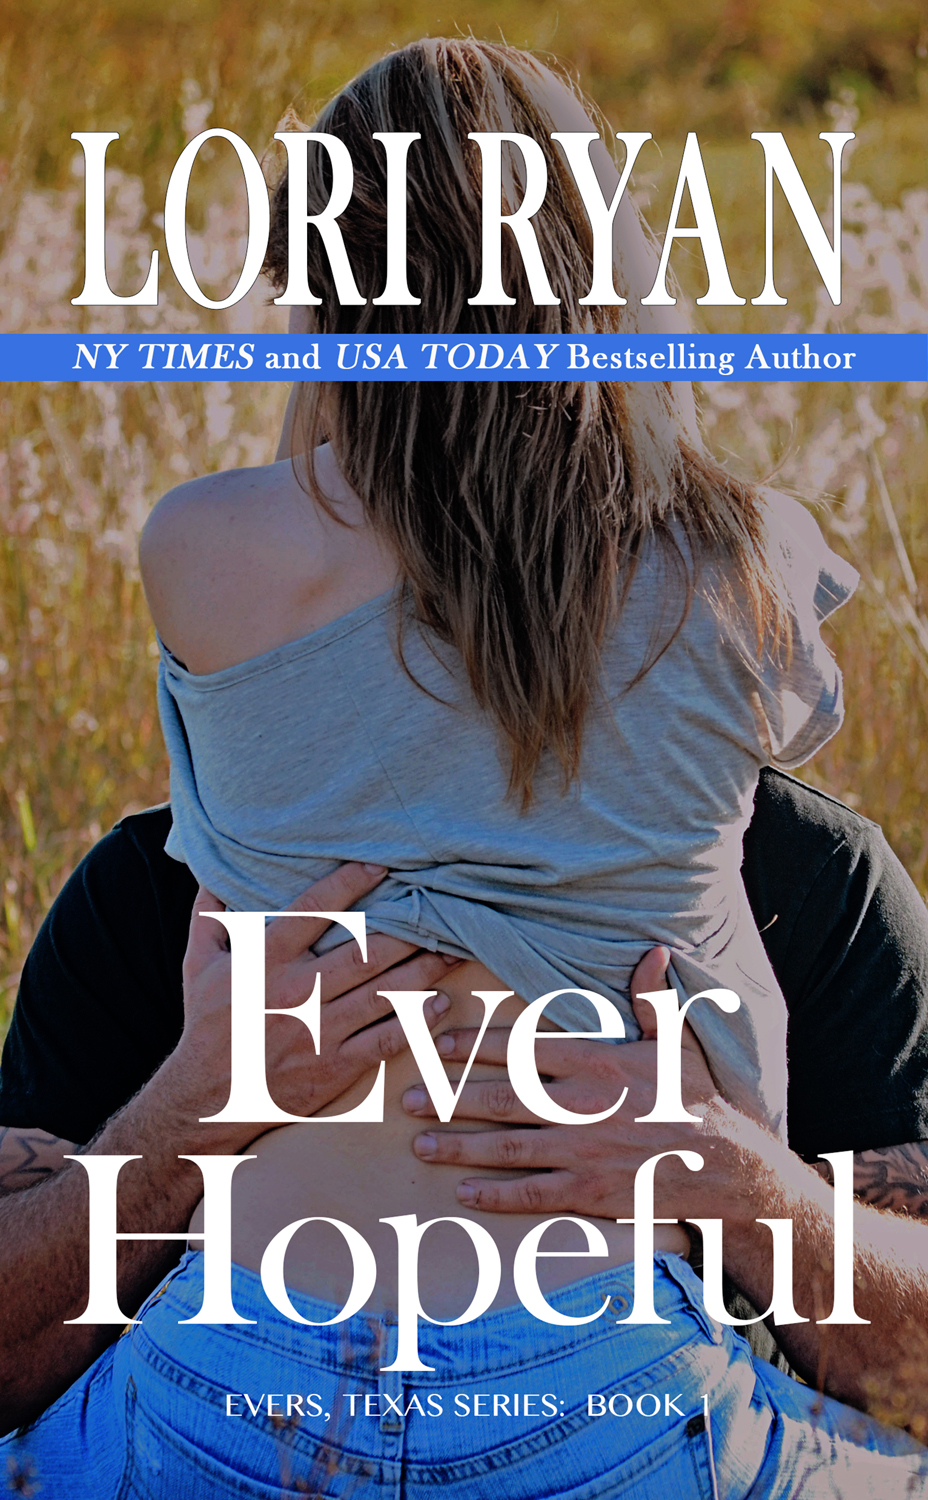 #Blog Tour: Ever Hopeful by Lori Ryan